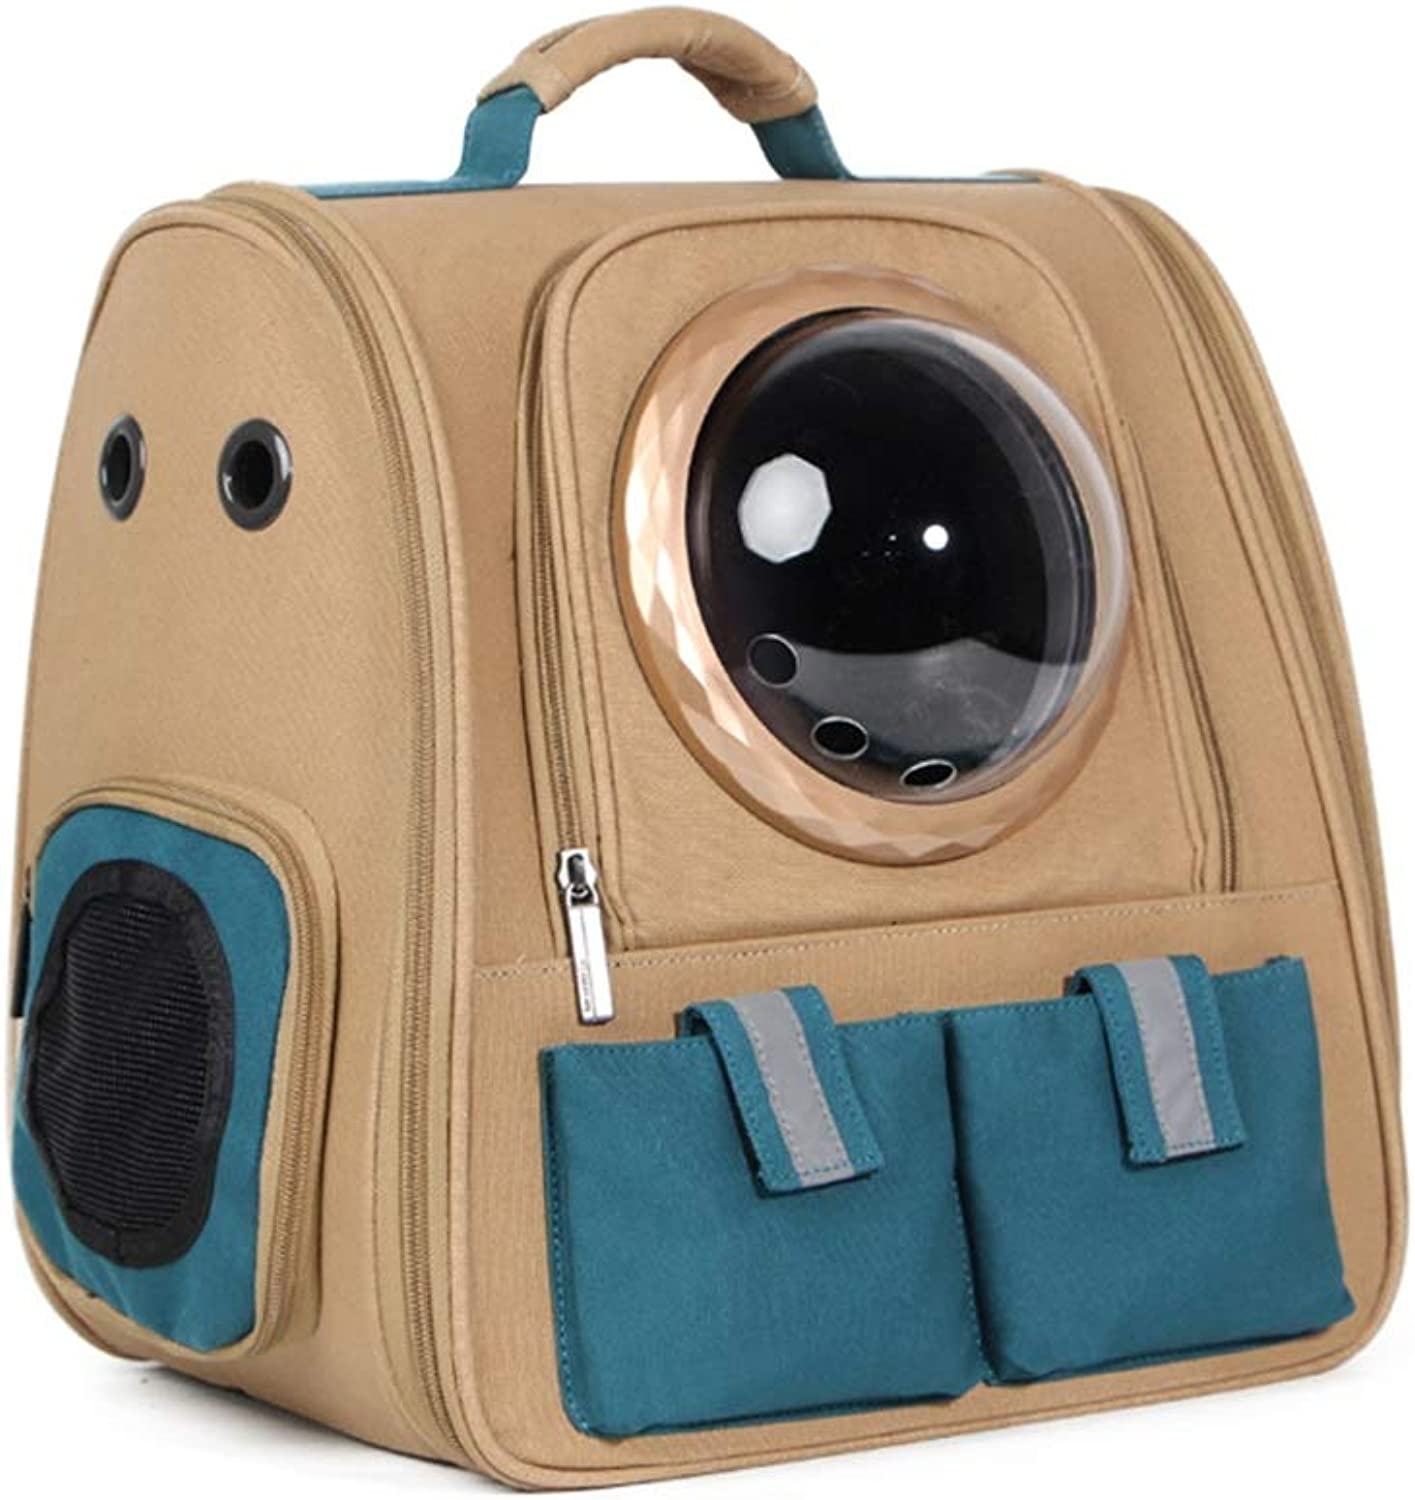 Pet Backpack Space Bag Scalable Outgoing Carrying Case Chest Shoulder Bags Handbag Dog Bags Cat Cage (color   Brown B, Size   38X28X40cm)